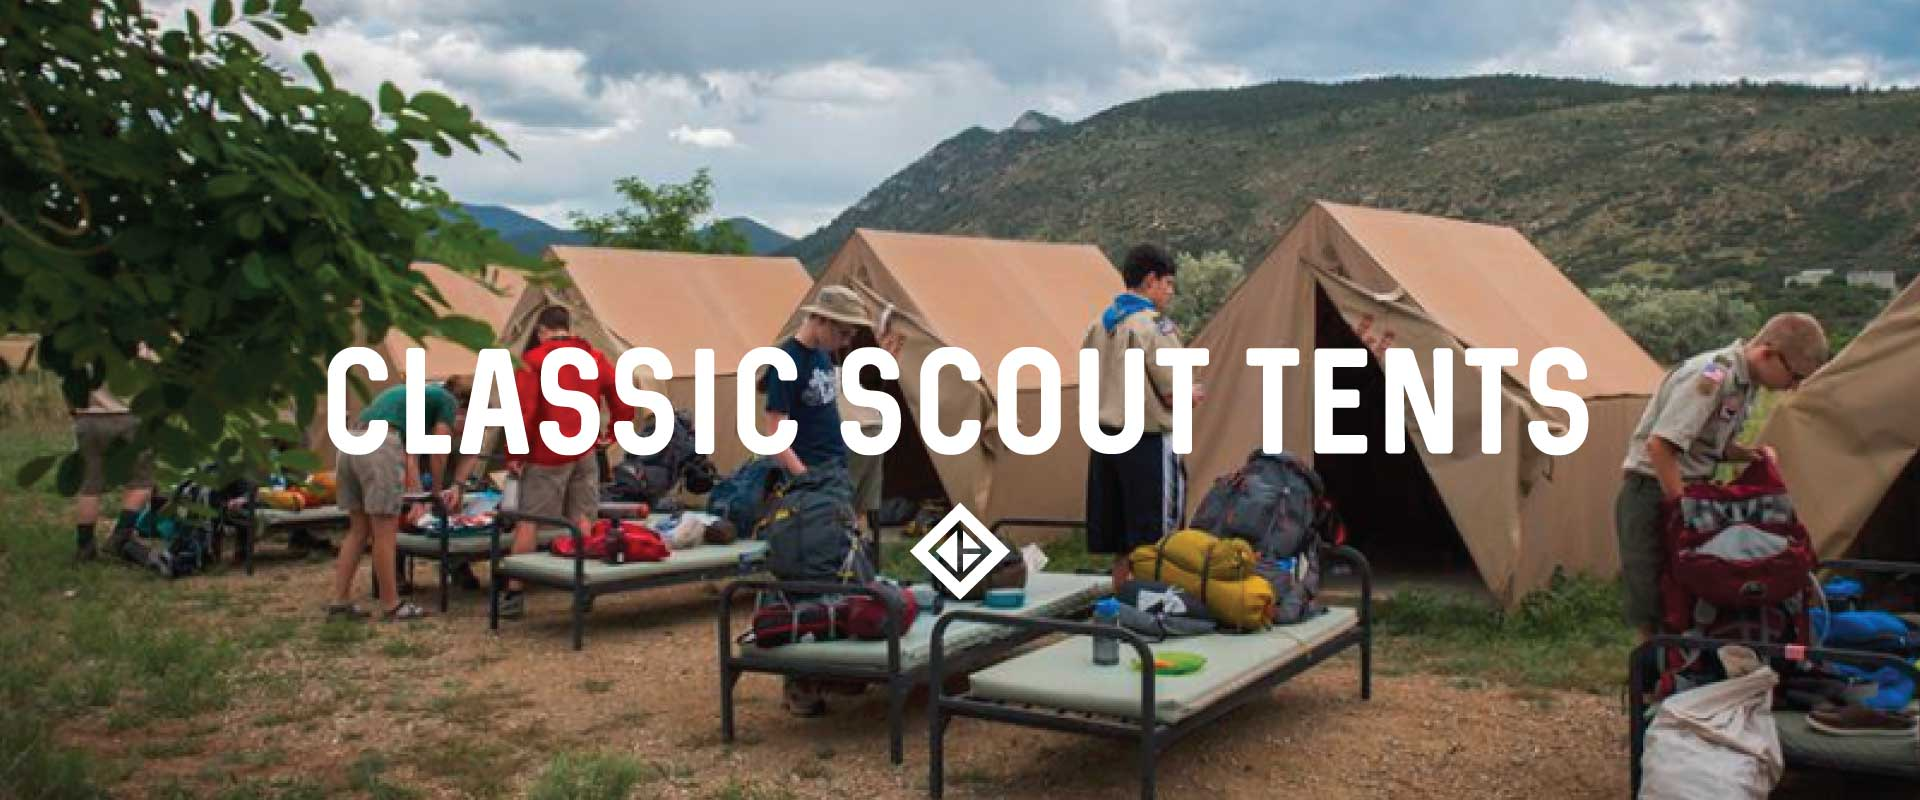 Classic Scout Tents banner